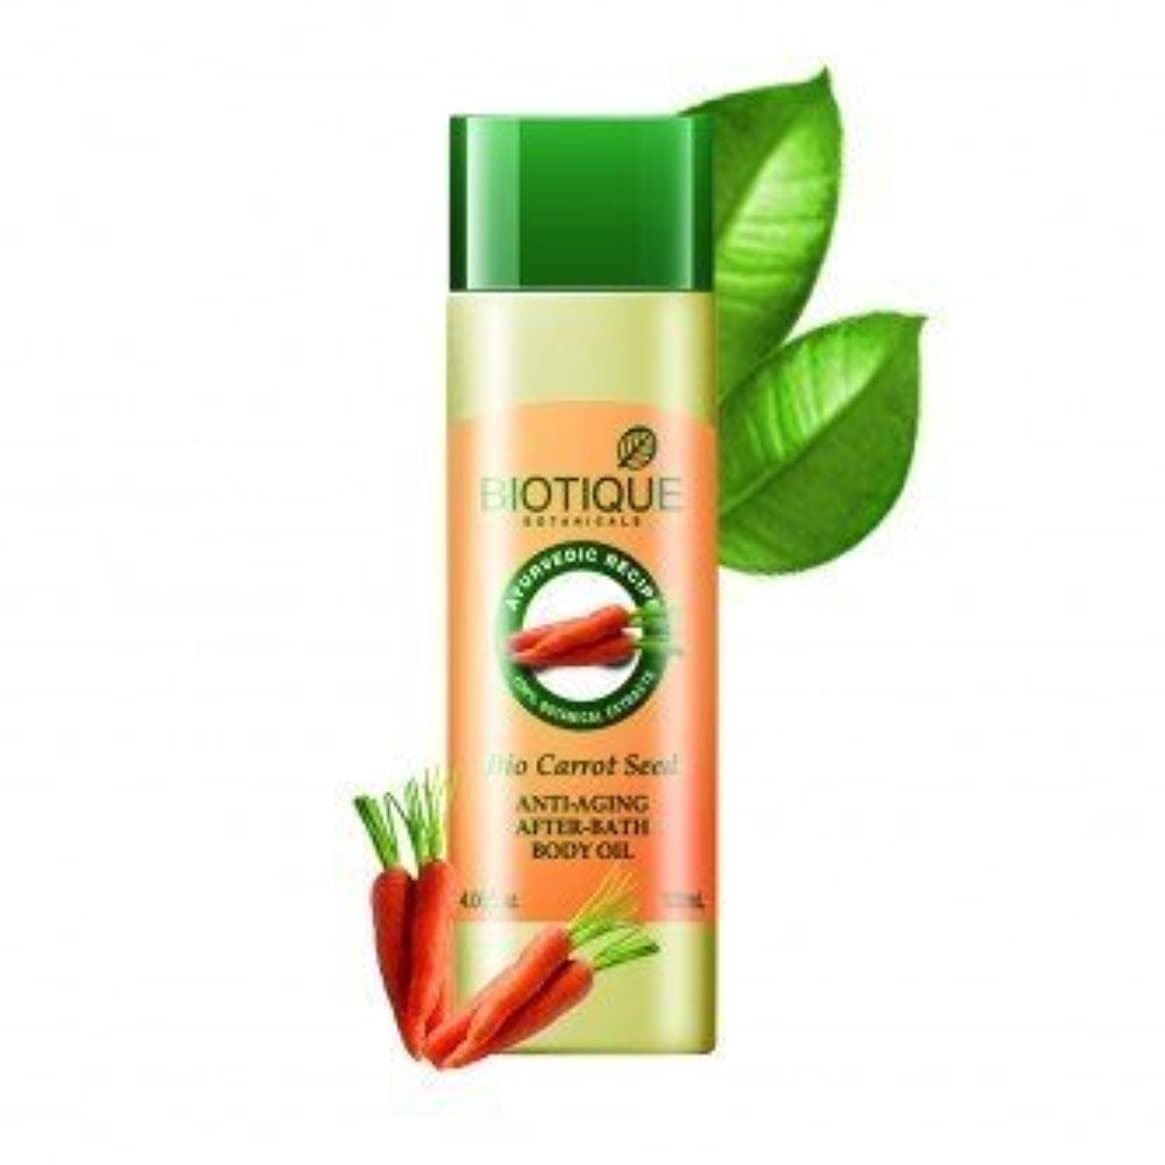 甘い怖がらせる社説Biotique Bio Carrot Seed Anti-Aging After-Bath Body Oil 120 Ml (Ship From India)